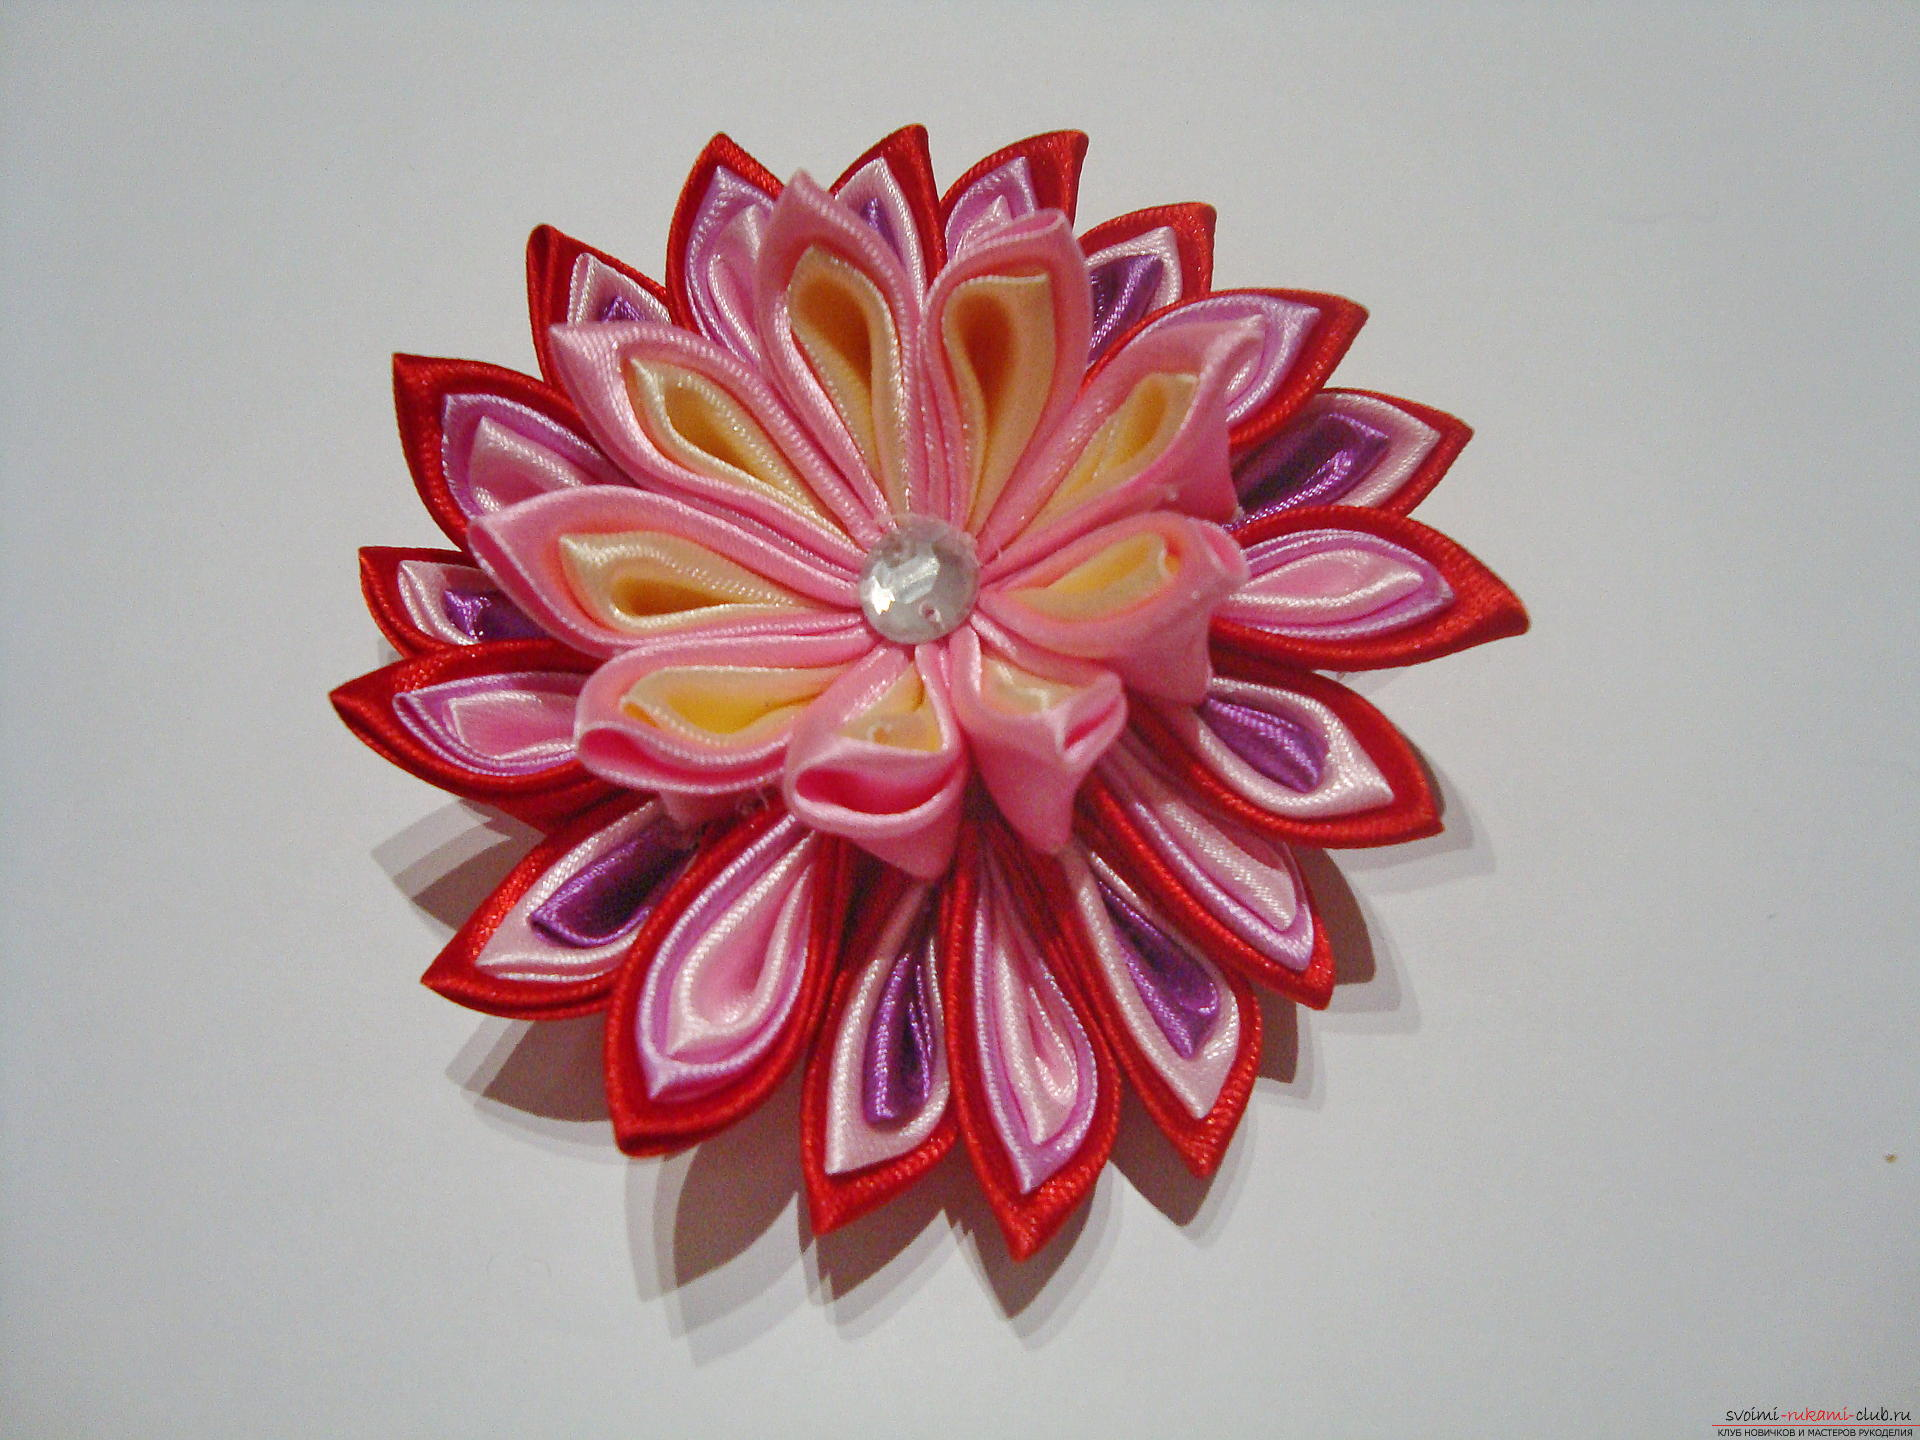 A detailed guide with a photo on making a hairpin in the shape of a flower with multi-colored petals in Kansas technique. Photo Number 11